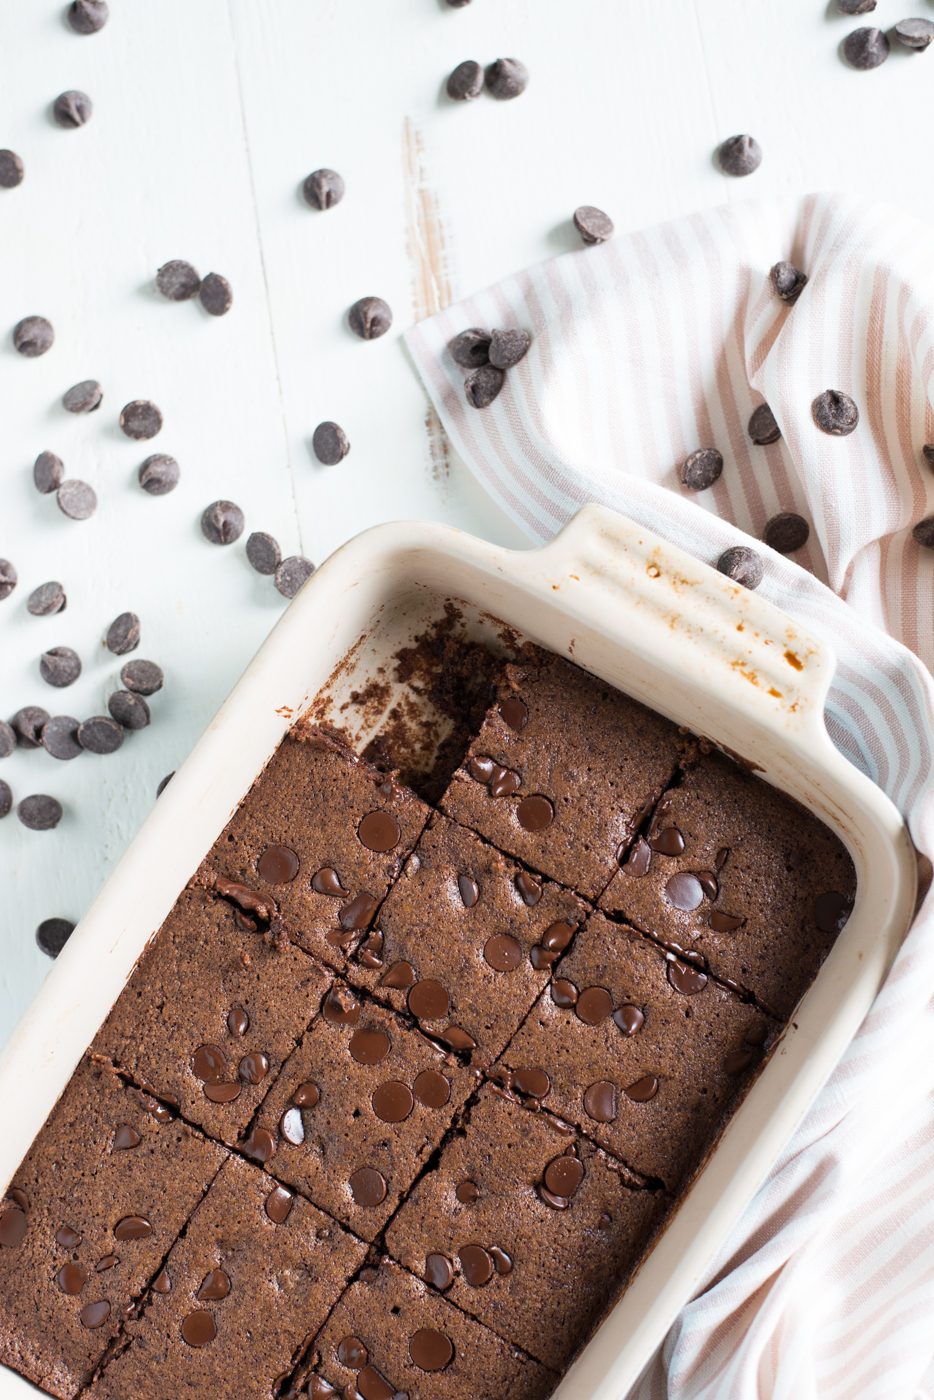 Chocolatey, cakey, rich, and delicious, One-Bowl Flourless Double Chocolate Brownies are a snap to throw together + the perfect gluten-free, dairy-free, grain-free, refined sugar-free treat!